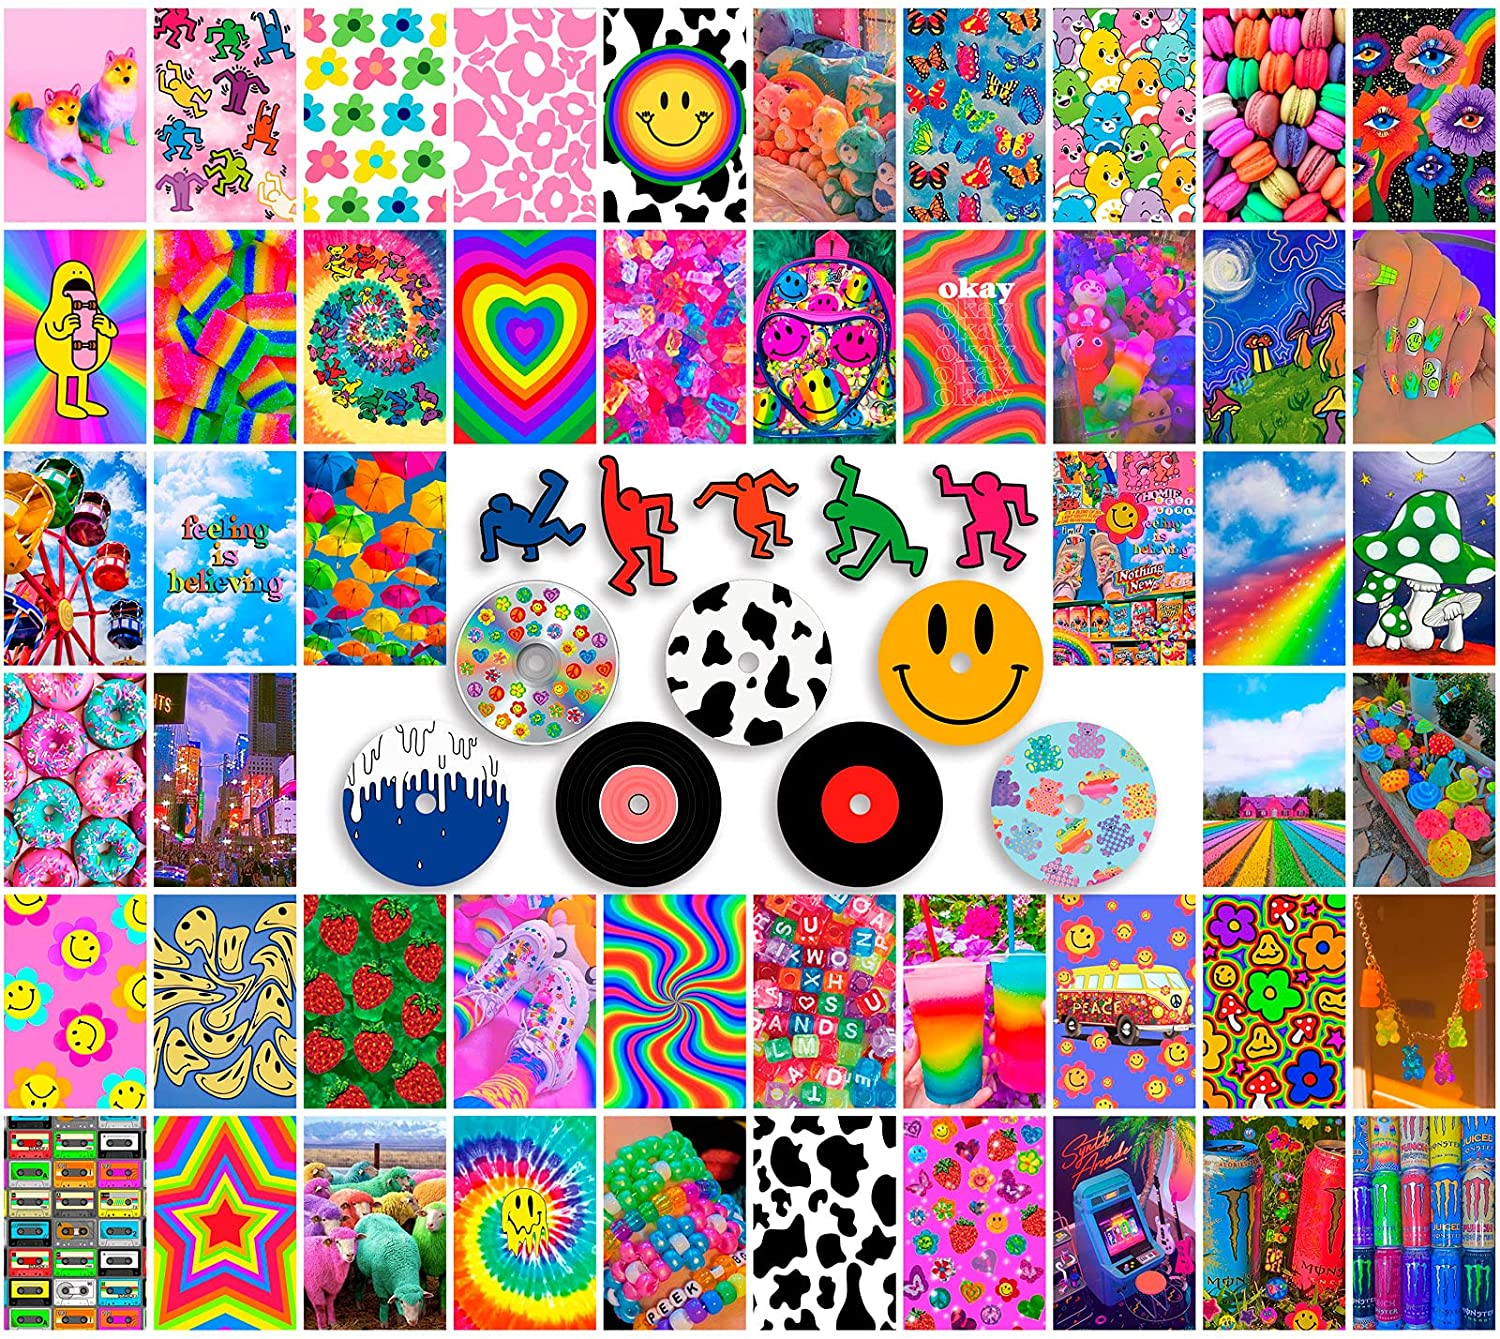 ANERZA Indie Room Decor for Bedroom Aesthetic, Wall Collage Kit Aesthetic Pictures, Posters for Room Aesthetic, Cute Photo Wall Decor for Teen Girls, Y2k Kidcore Trippy Grunge, 4x6 Inch Images (62pcs)